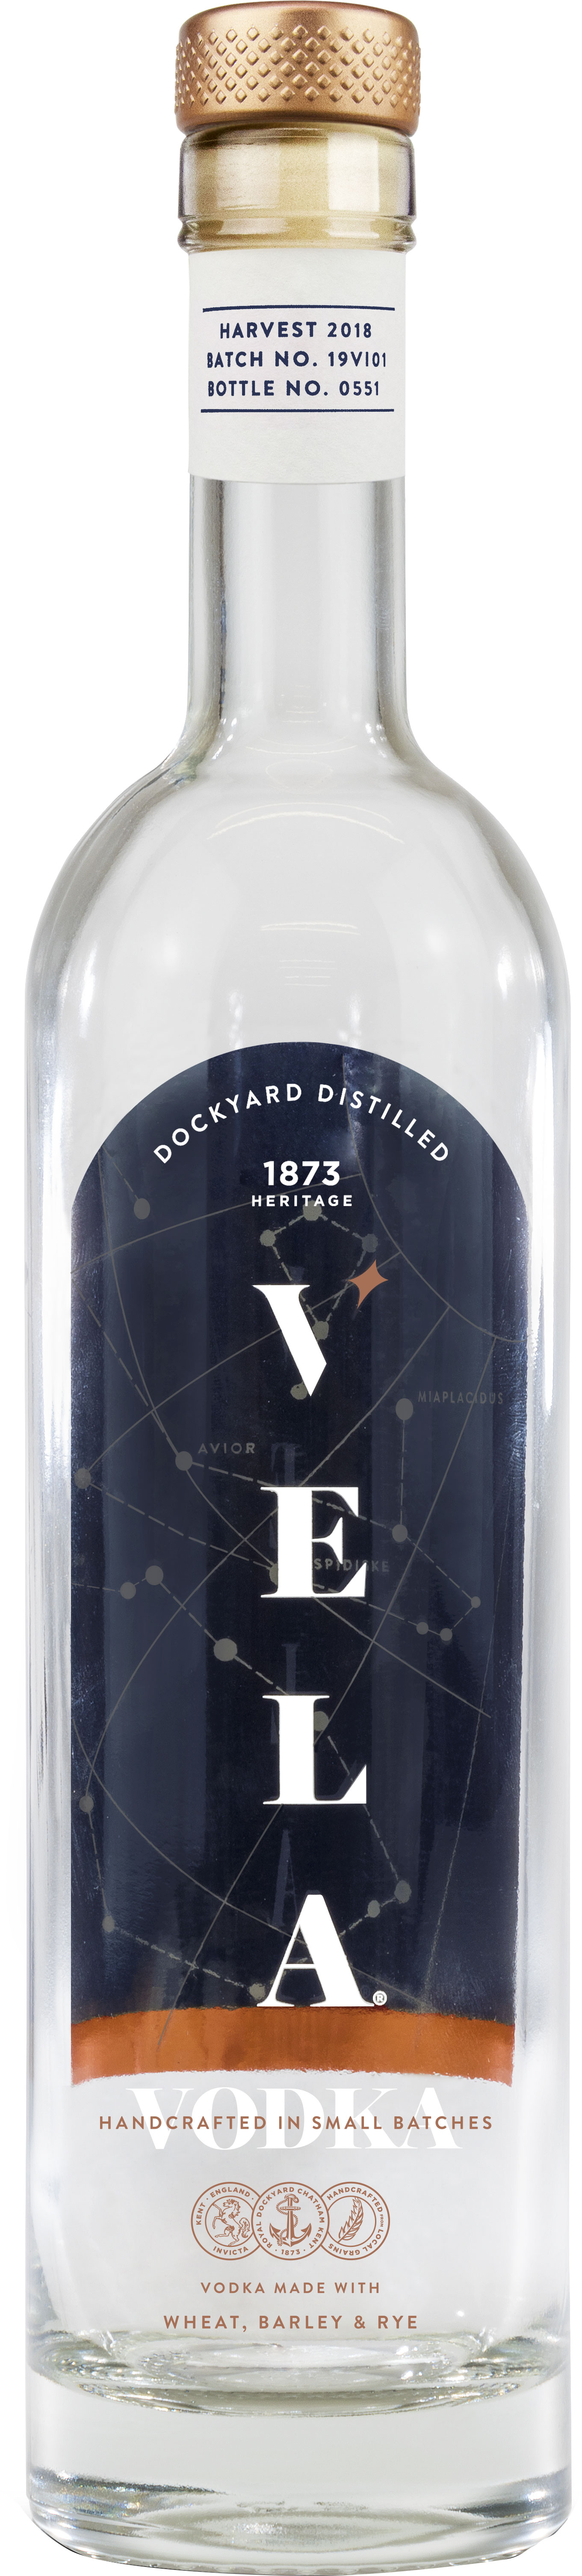 Dockyard - Vela Vodka 50cl Bottle